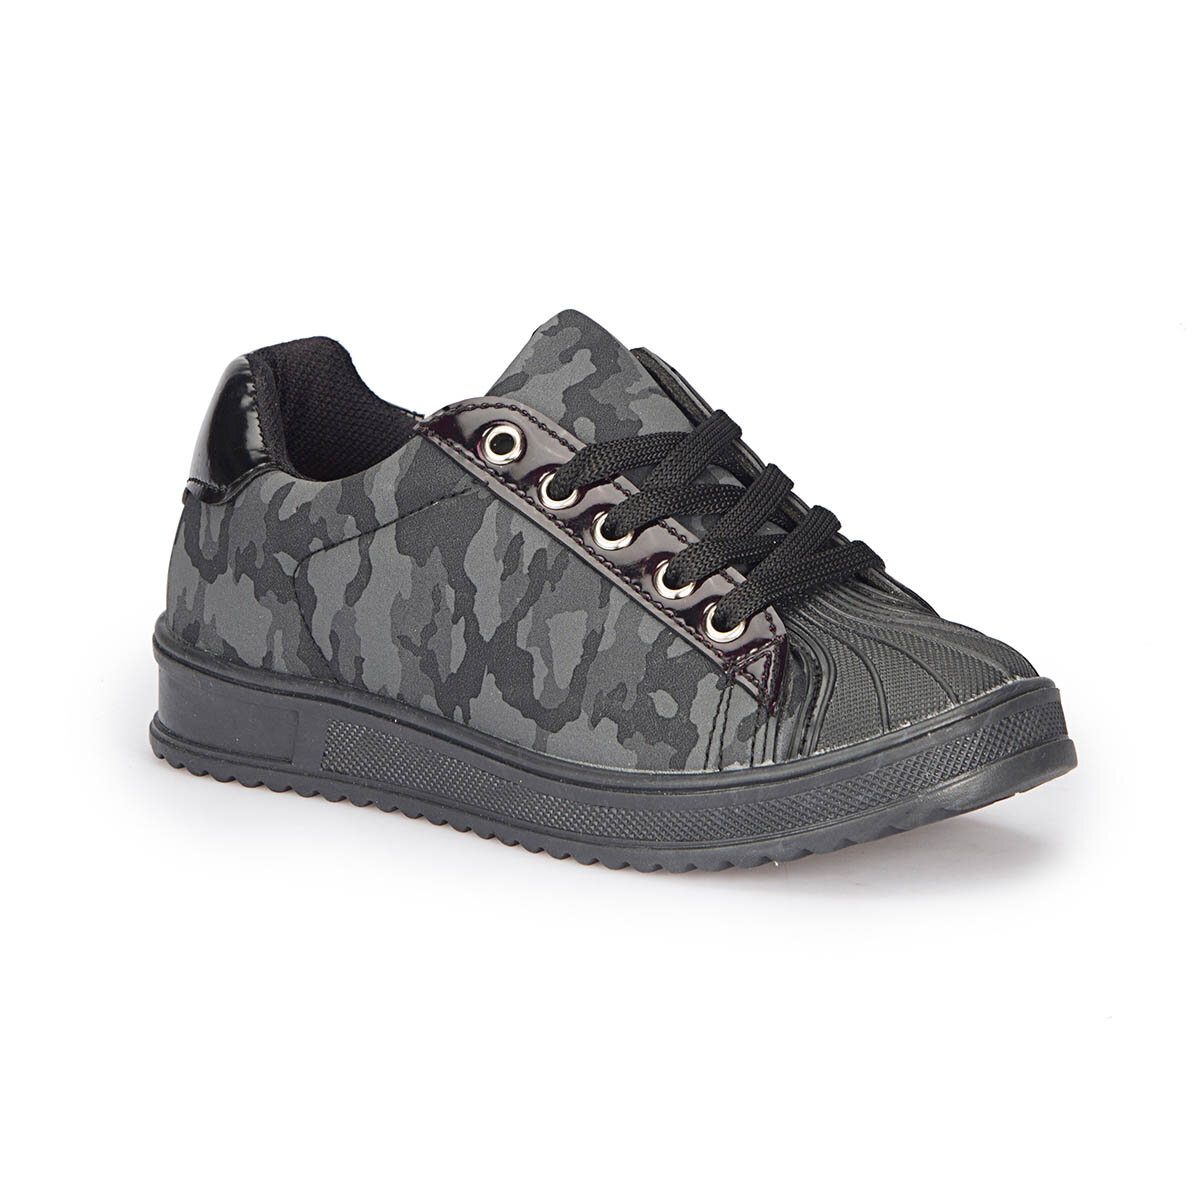 FLO 72.509747.F Camouflage Color Male Child Sneaker Shoes Polaris